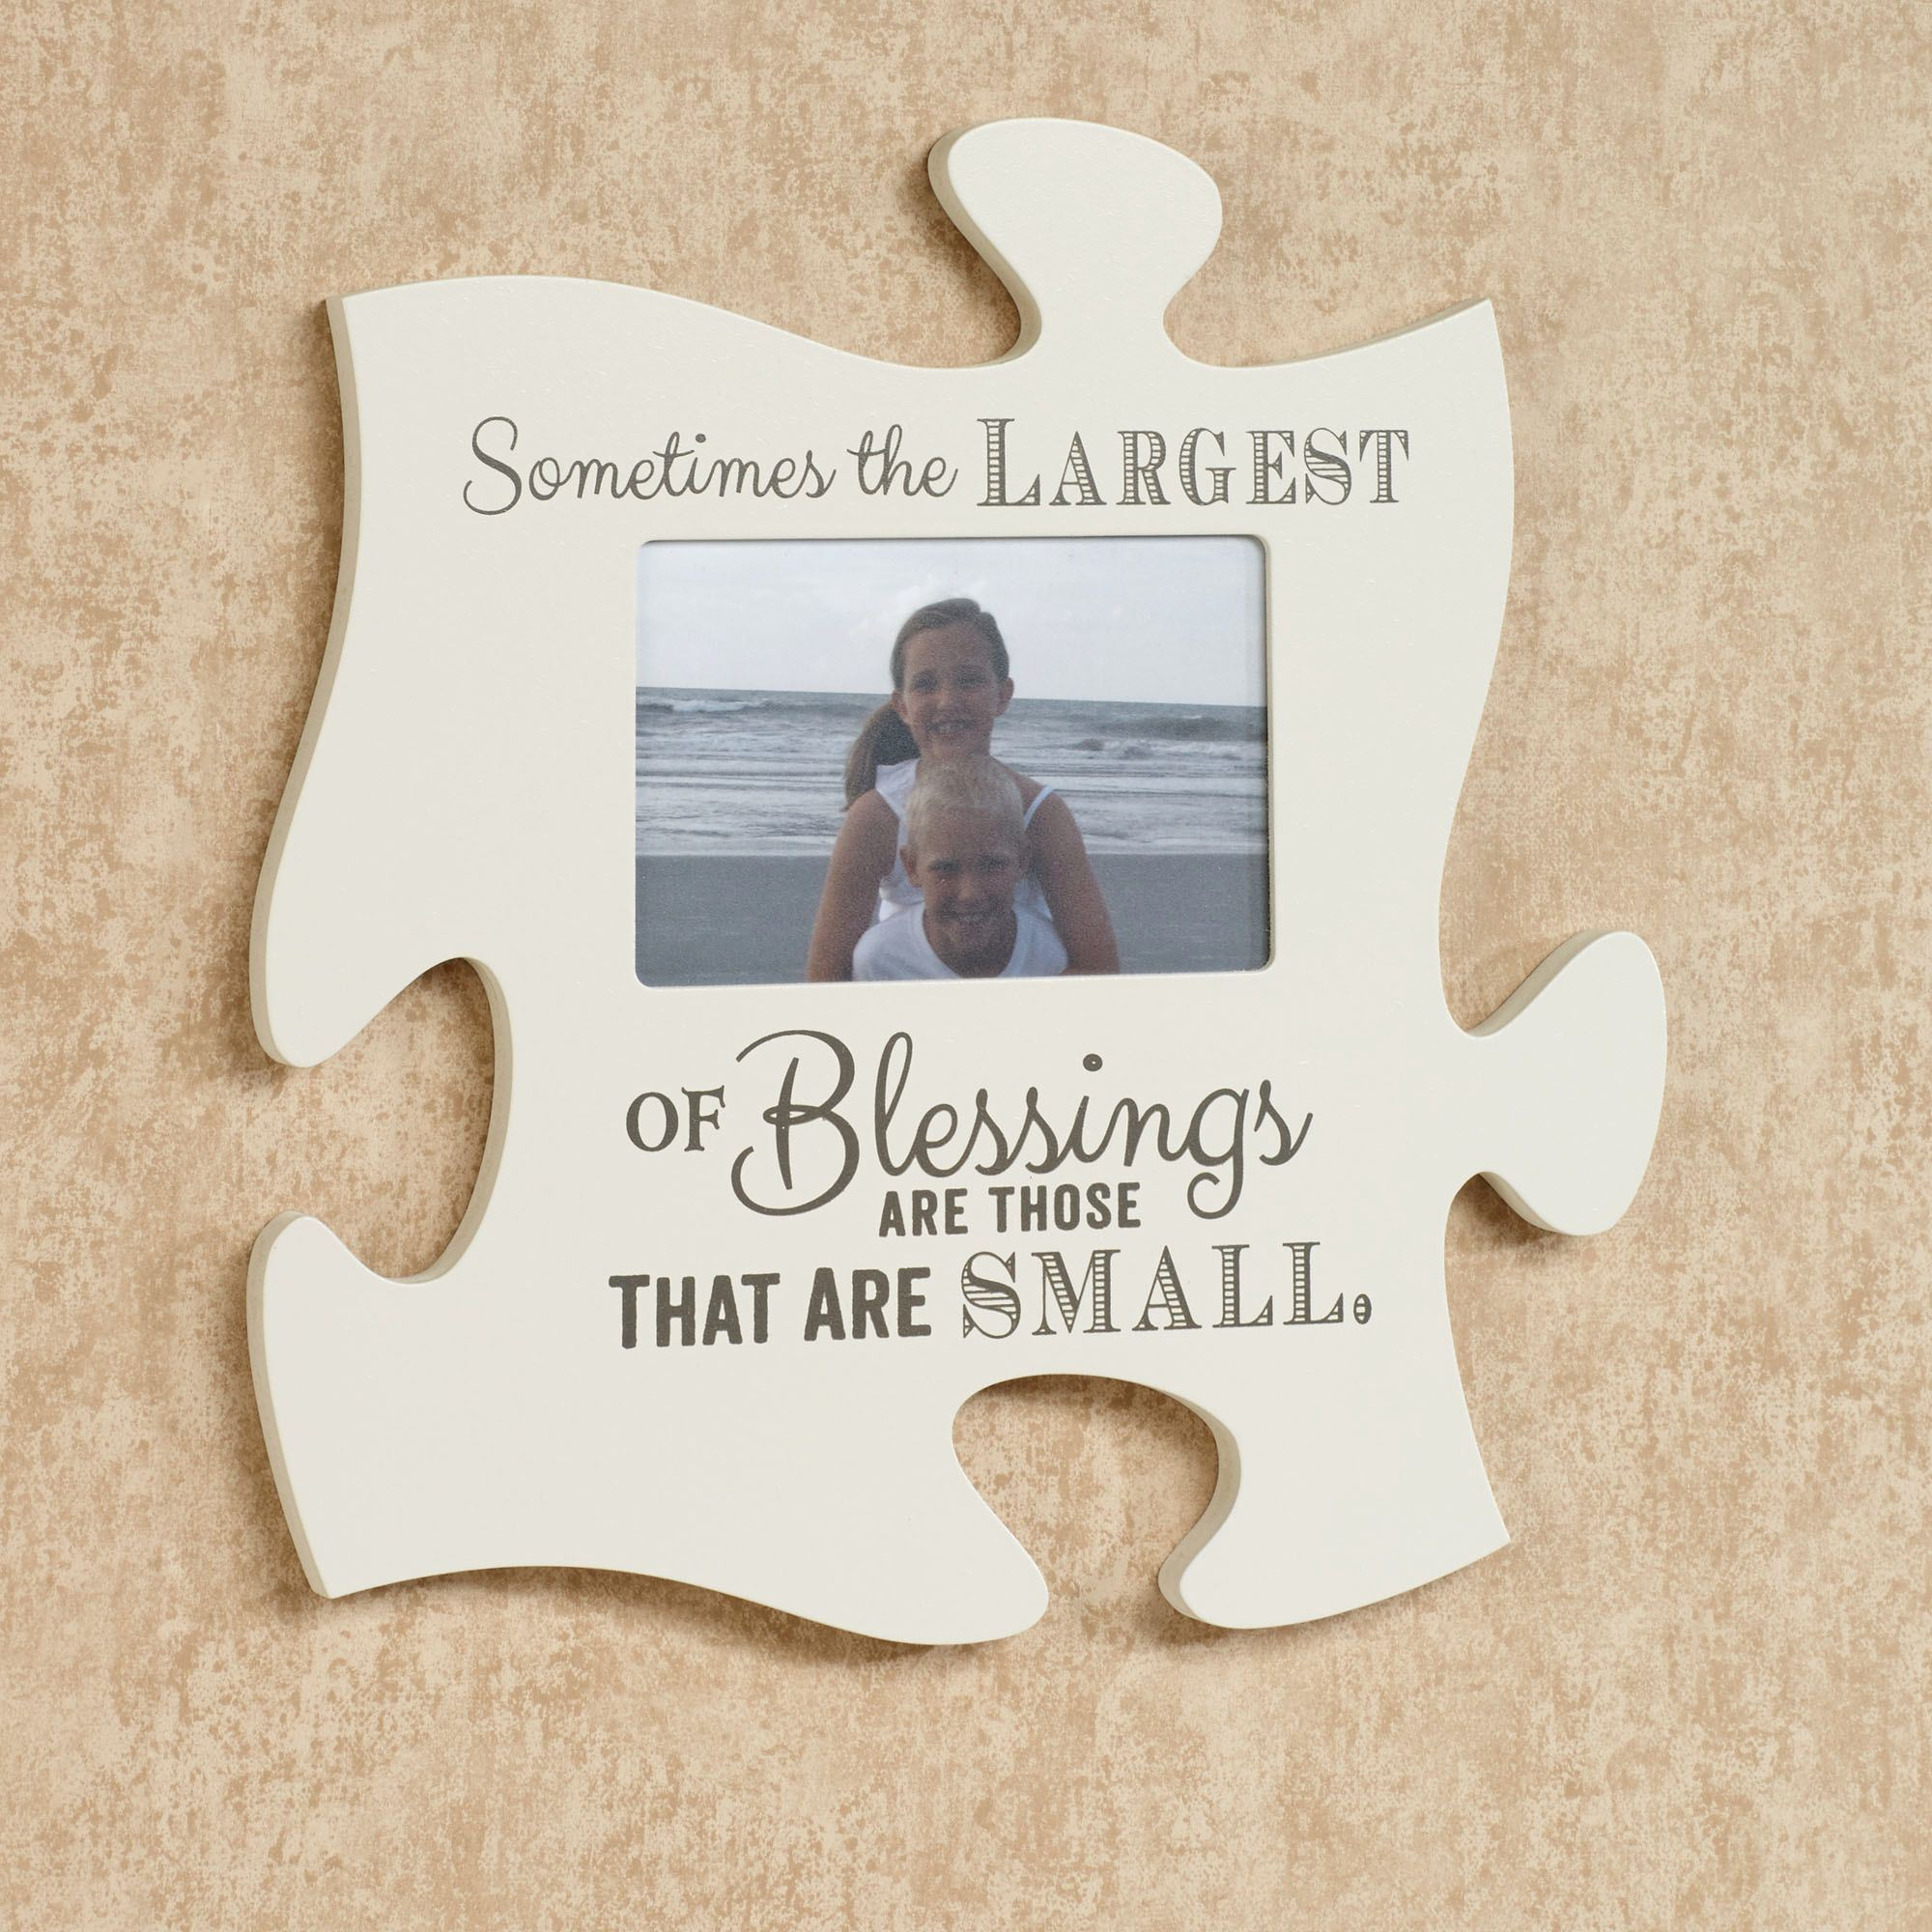 Blessings Photo Frame Puzzle Piece Wall Art